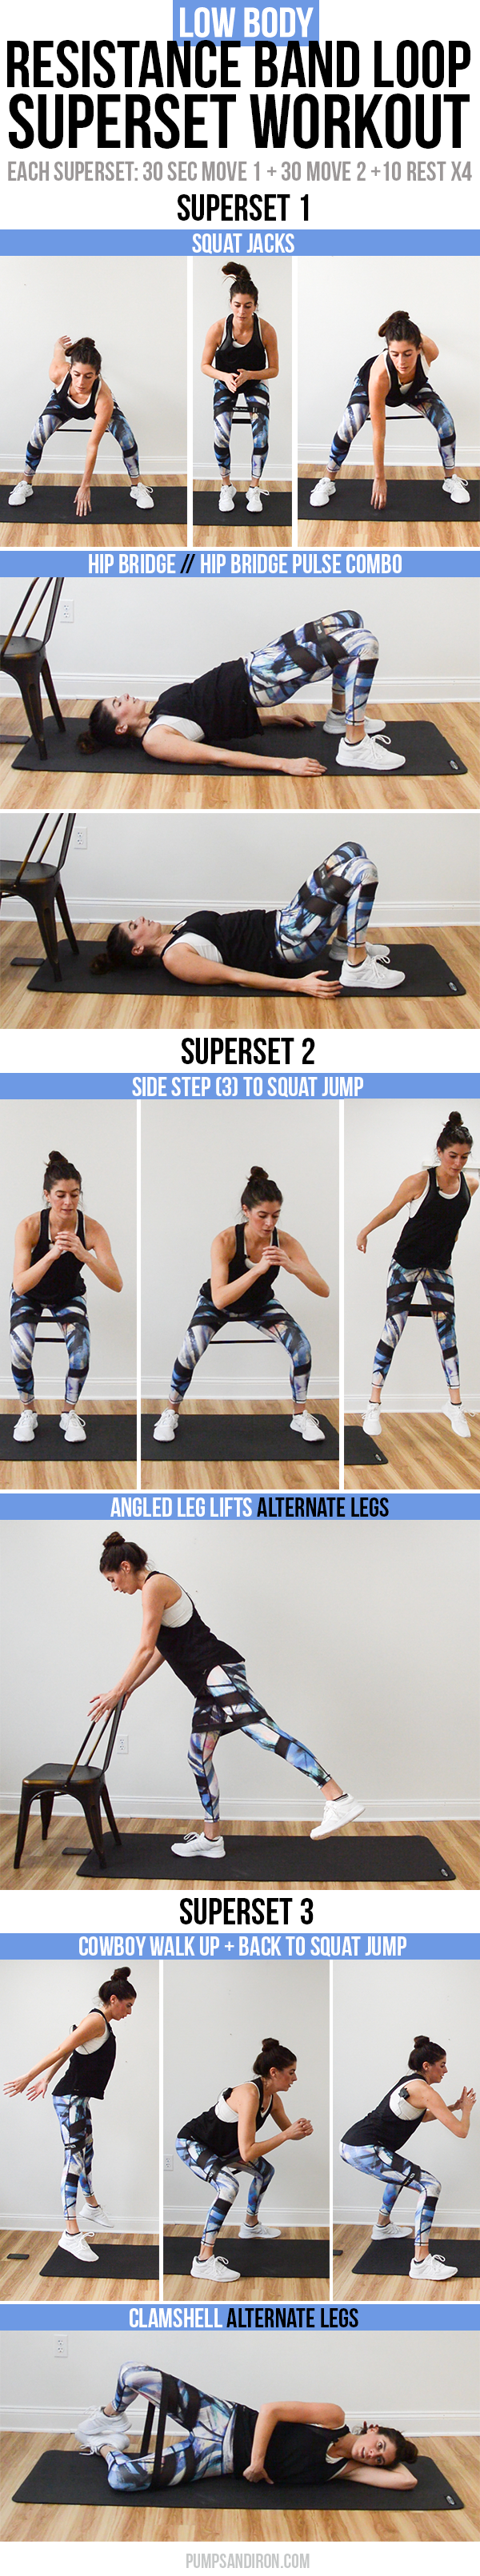 15 Minute Lower Body Resistance Band Loop Superset Workout Pumps